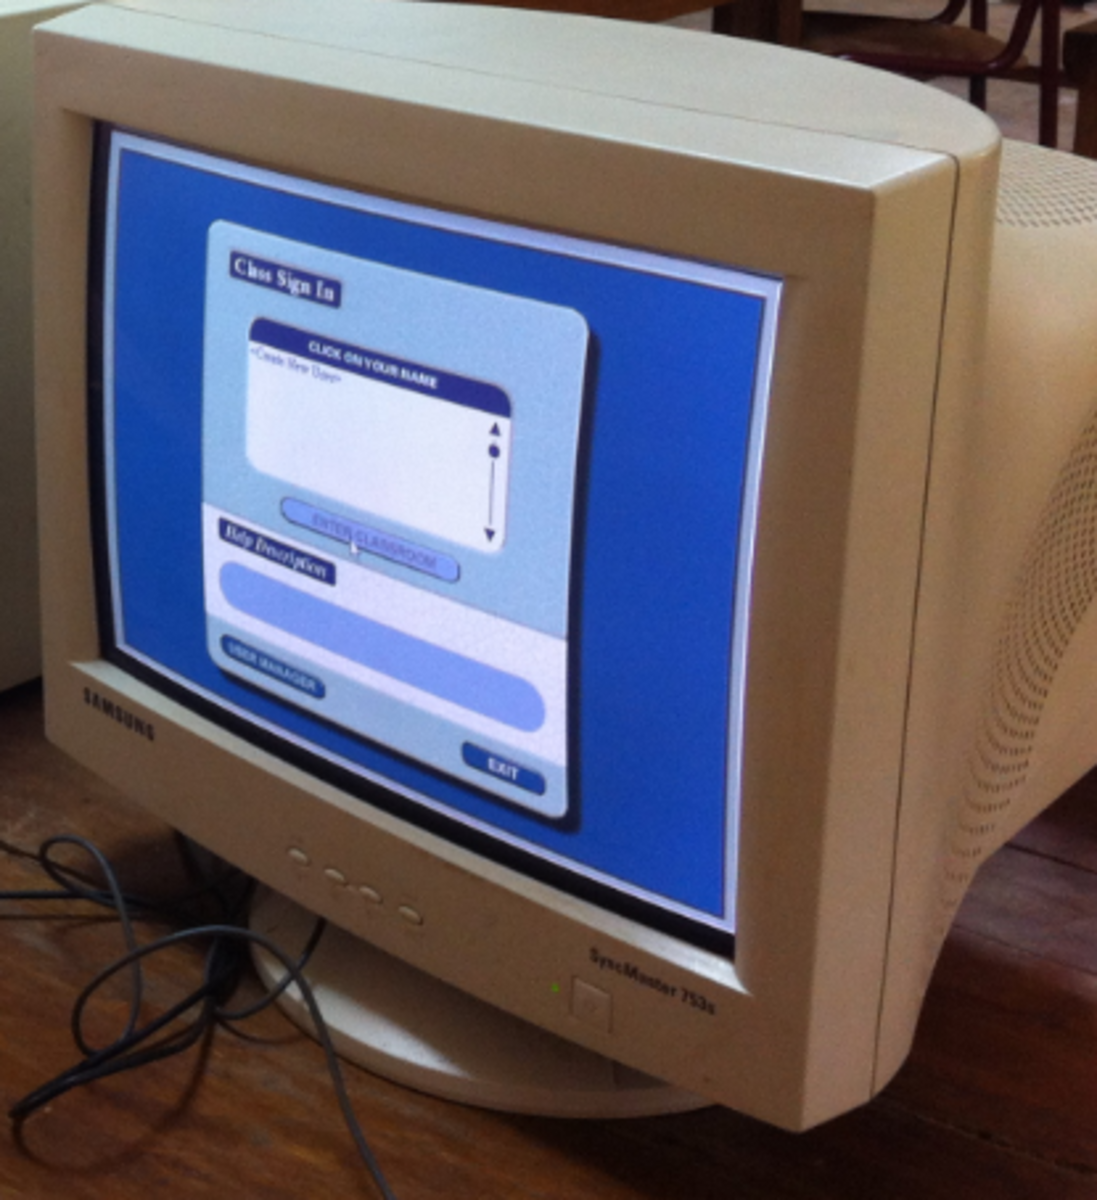 A CRT monitor is an example of output device